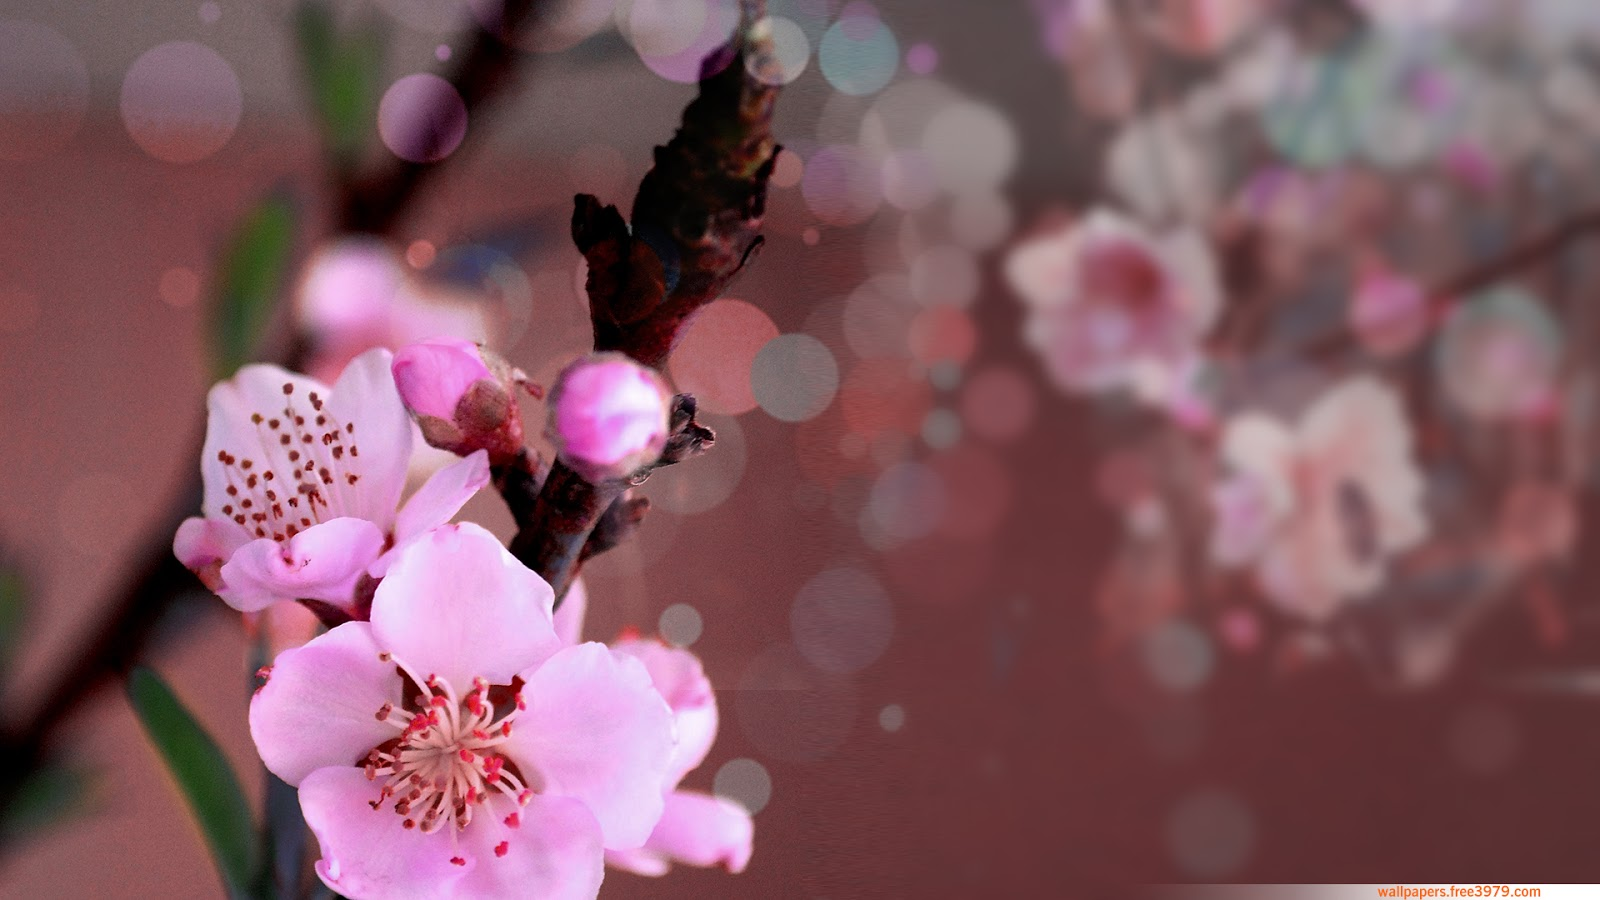 peach blossoms wallpaper - photo #14